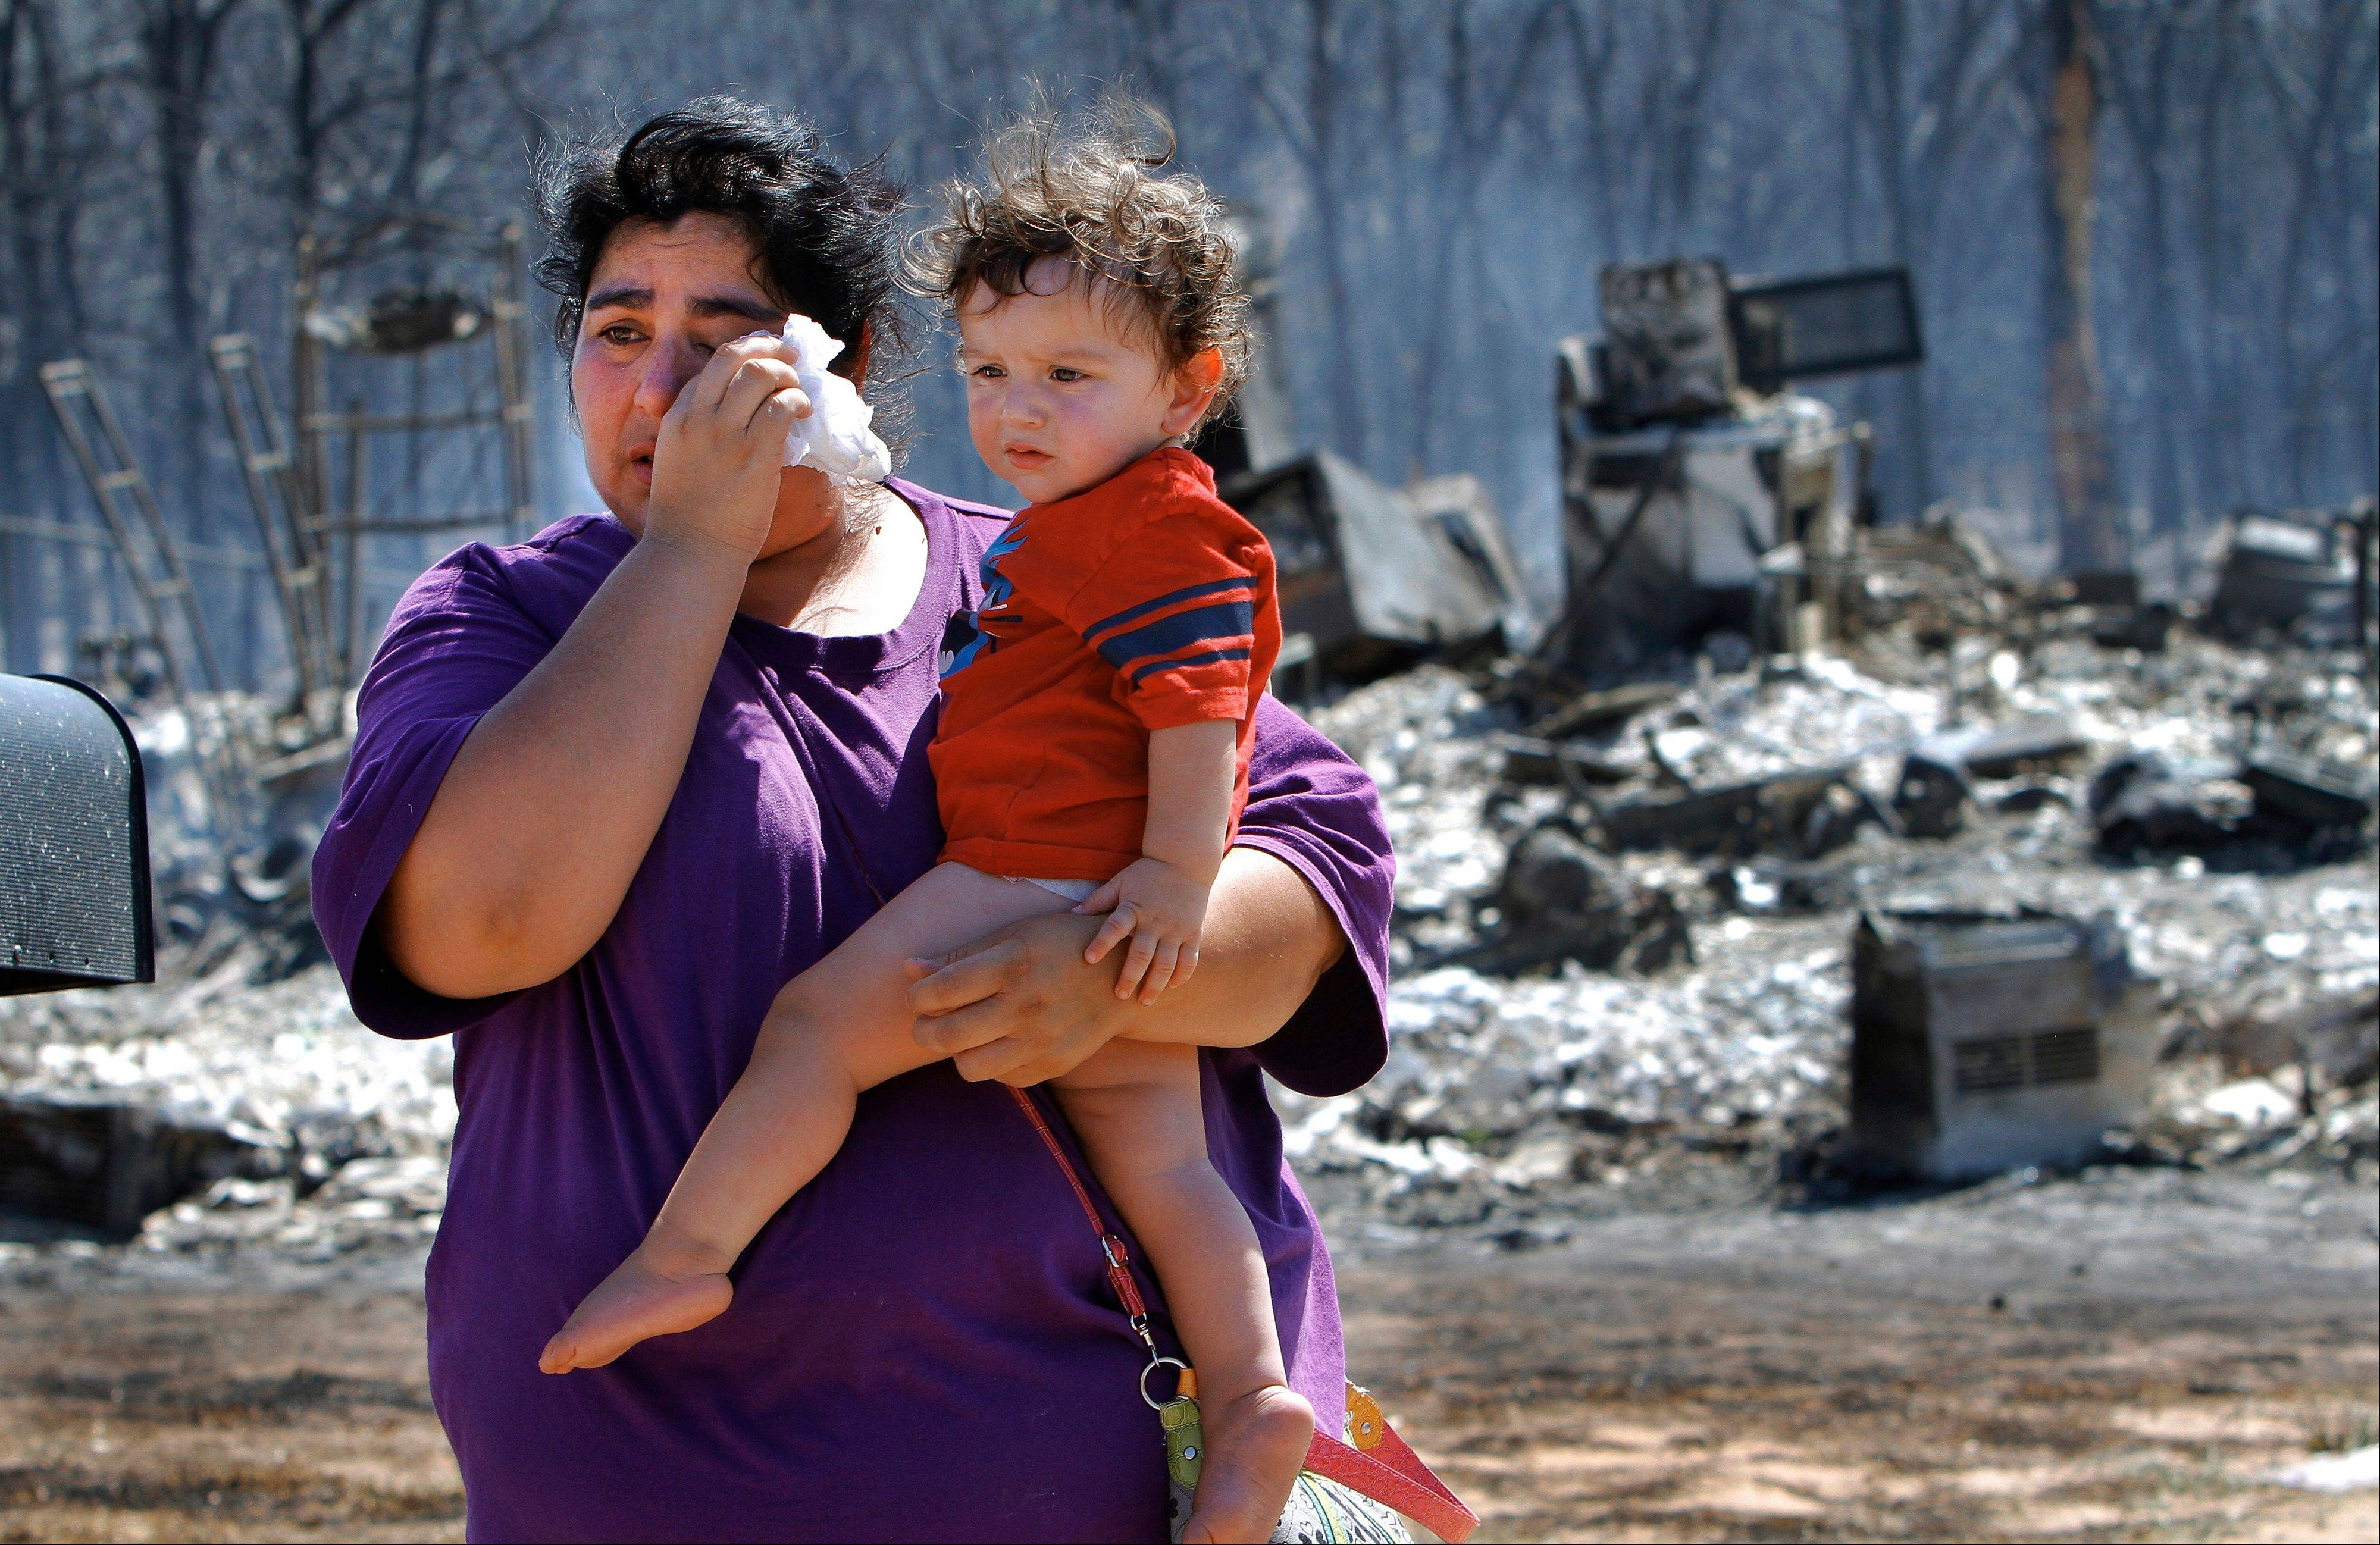 Victoria Landavazo holds youngest child, Axel, 1, while wiping tears after seeing what the wildfire in Luther, Okla., had done to their home there. The fire near Luther, which is about 25 miles northeast of Oklahoma City, destroyed nearly five dozen homes and other buildings before firefighters were able to gain some measure of control Saturday.